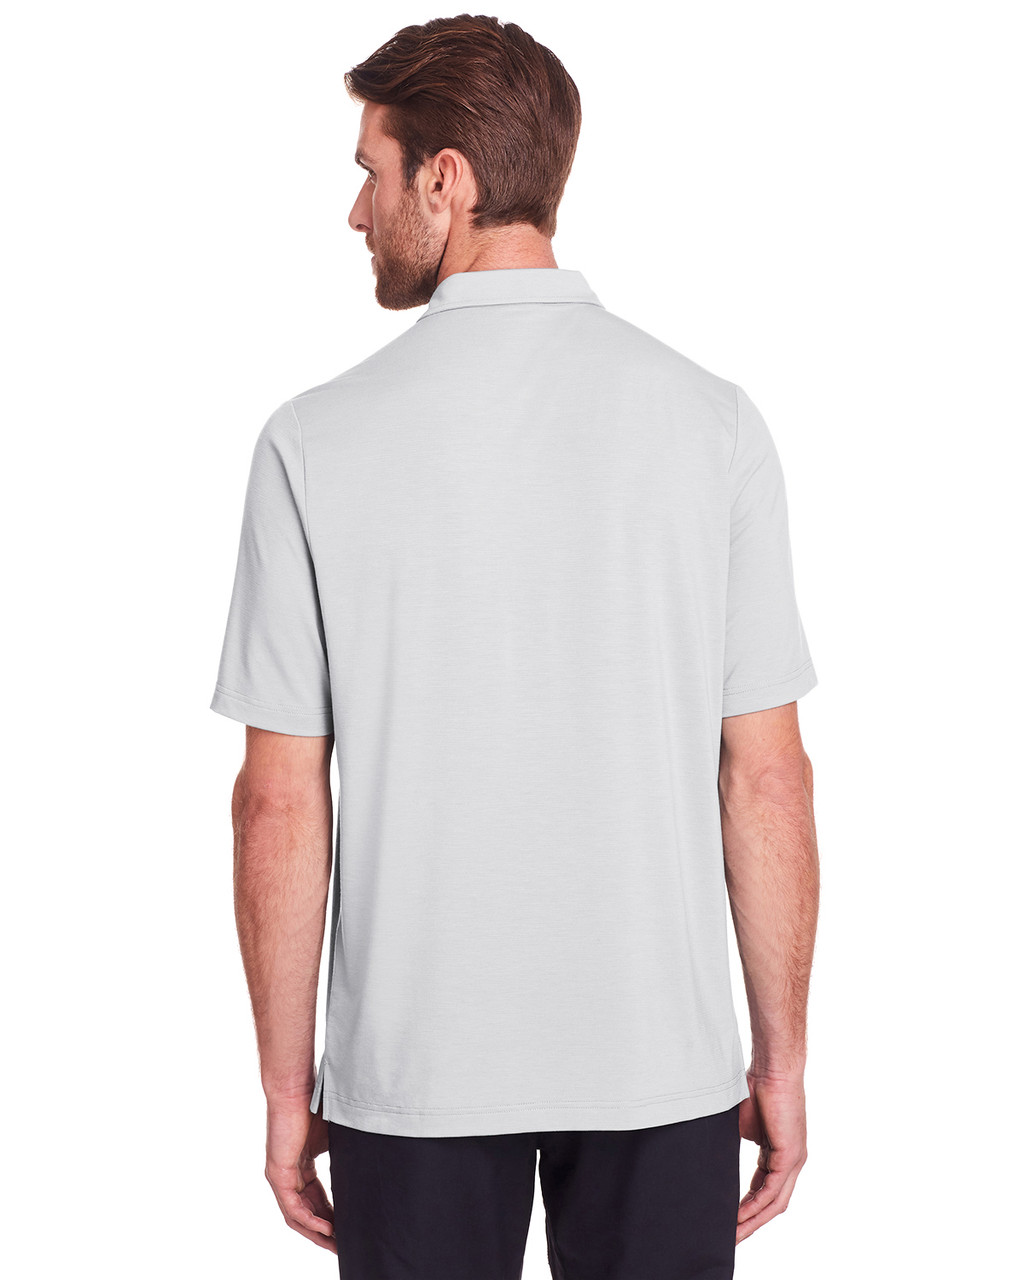 Platinum - Back, NE100 North End Men's Jaq Snap-Up Stretch Performance Polo | BlankClothing.ca